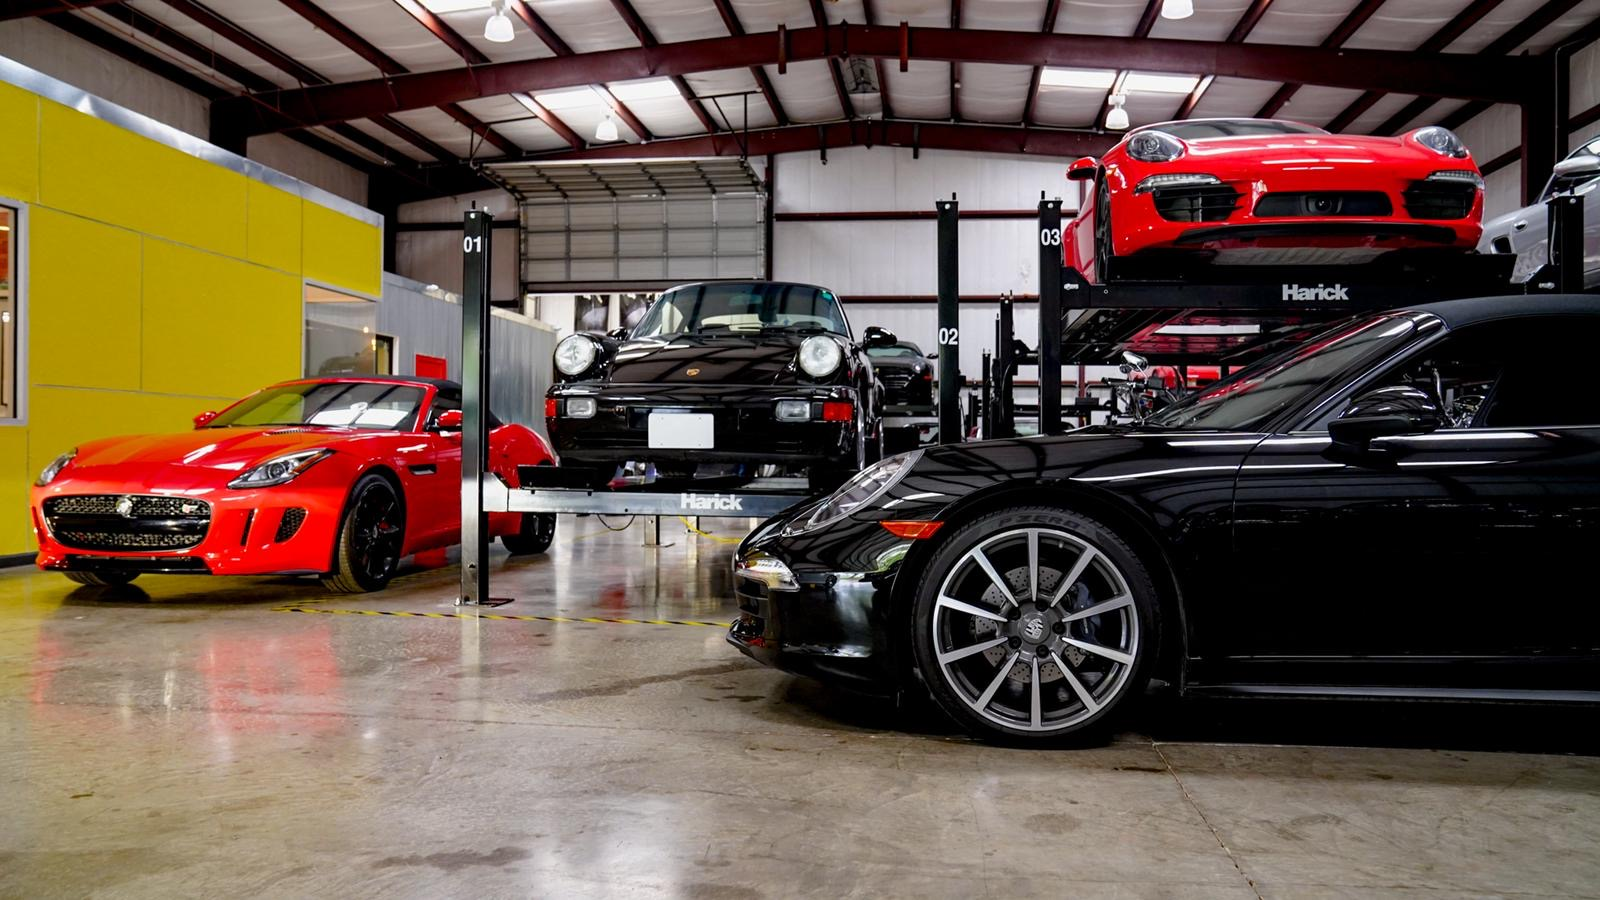 Vehicles maintained and stored inside our full range auto services location